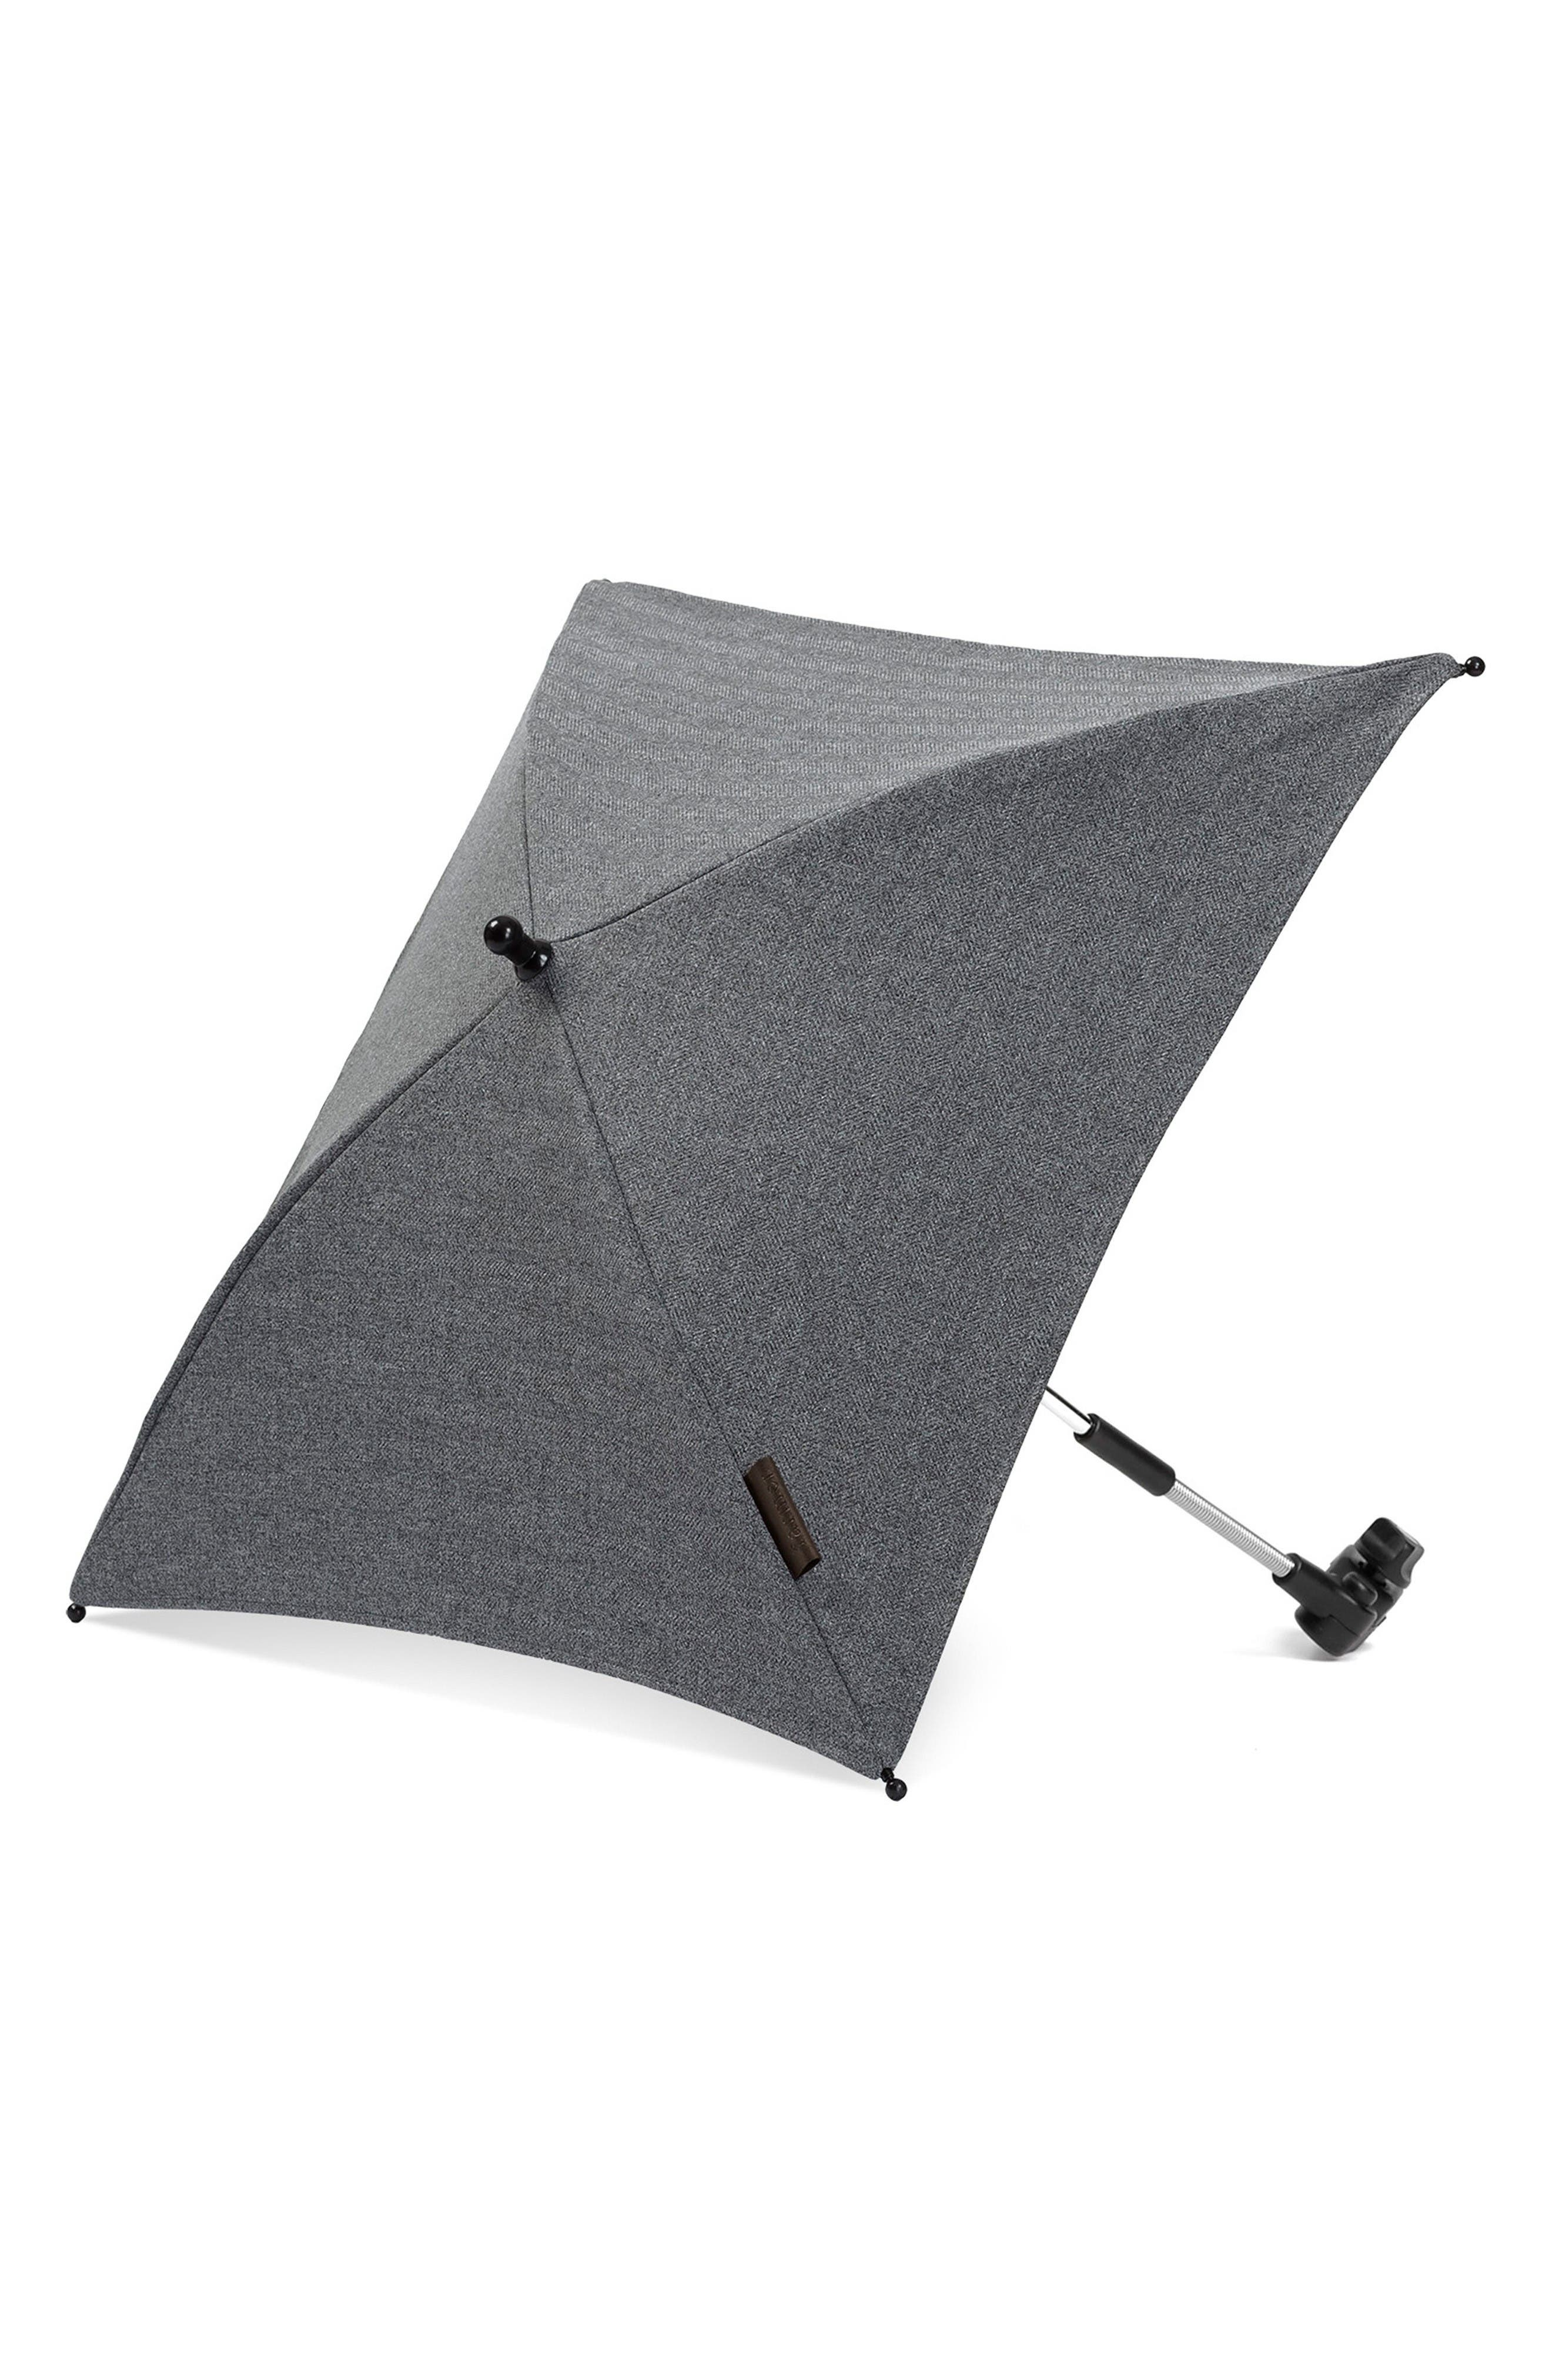 Main Image - Mutsy Evo - Farmer Stroller Umbrella